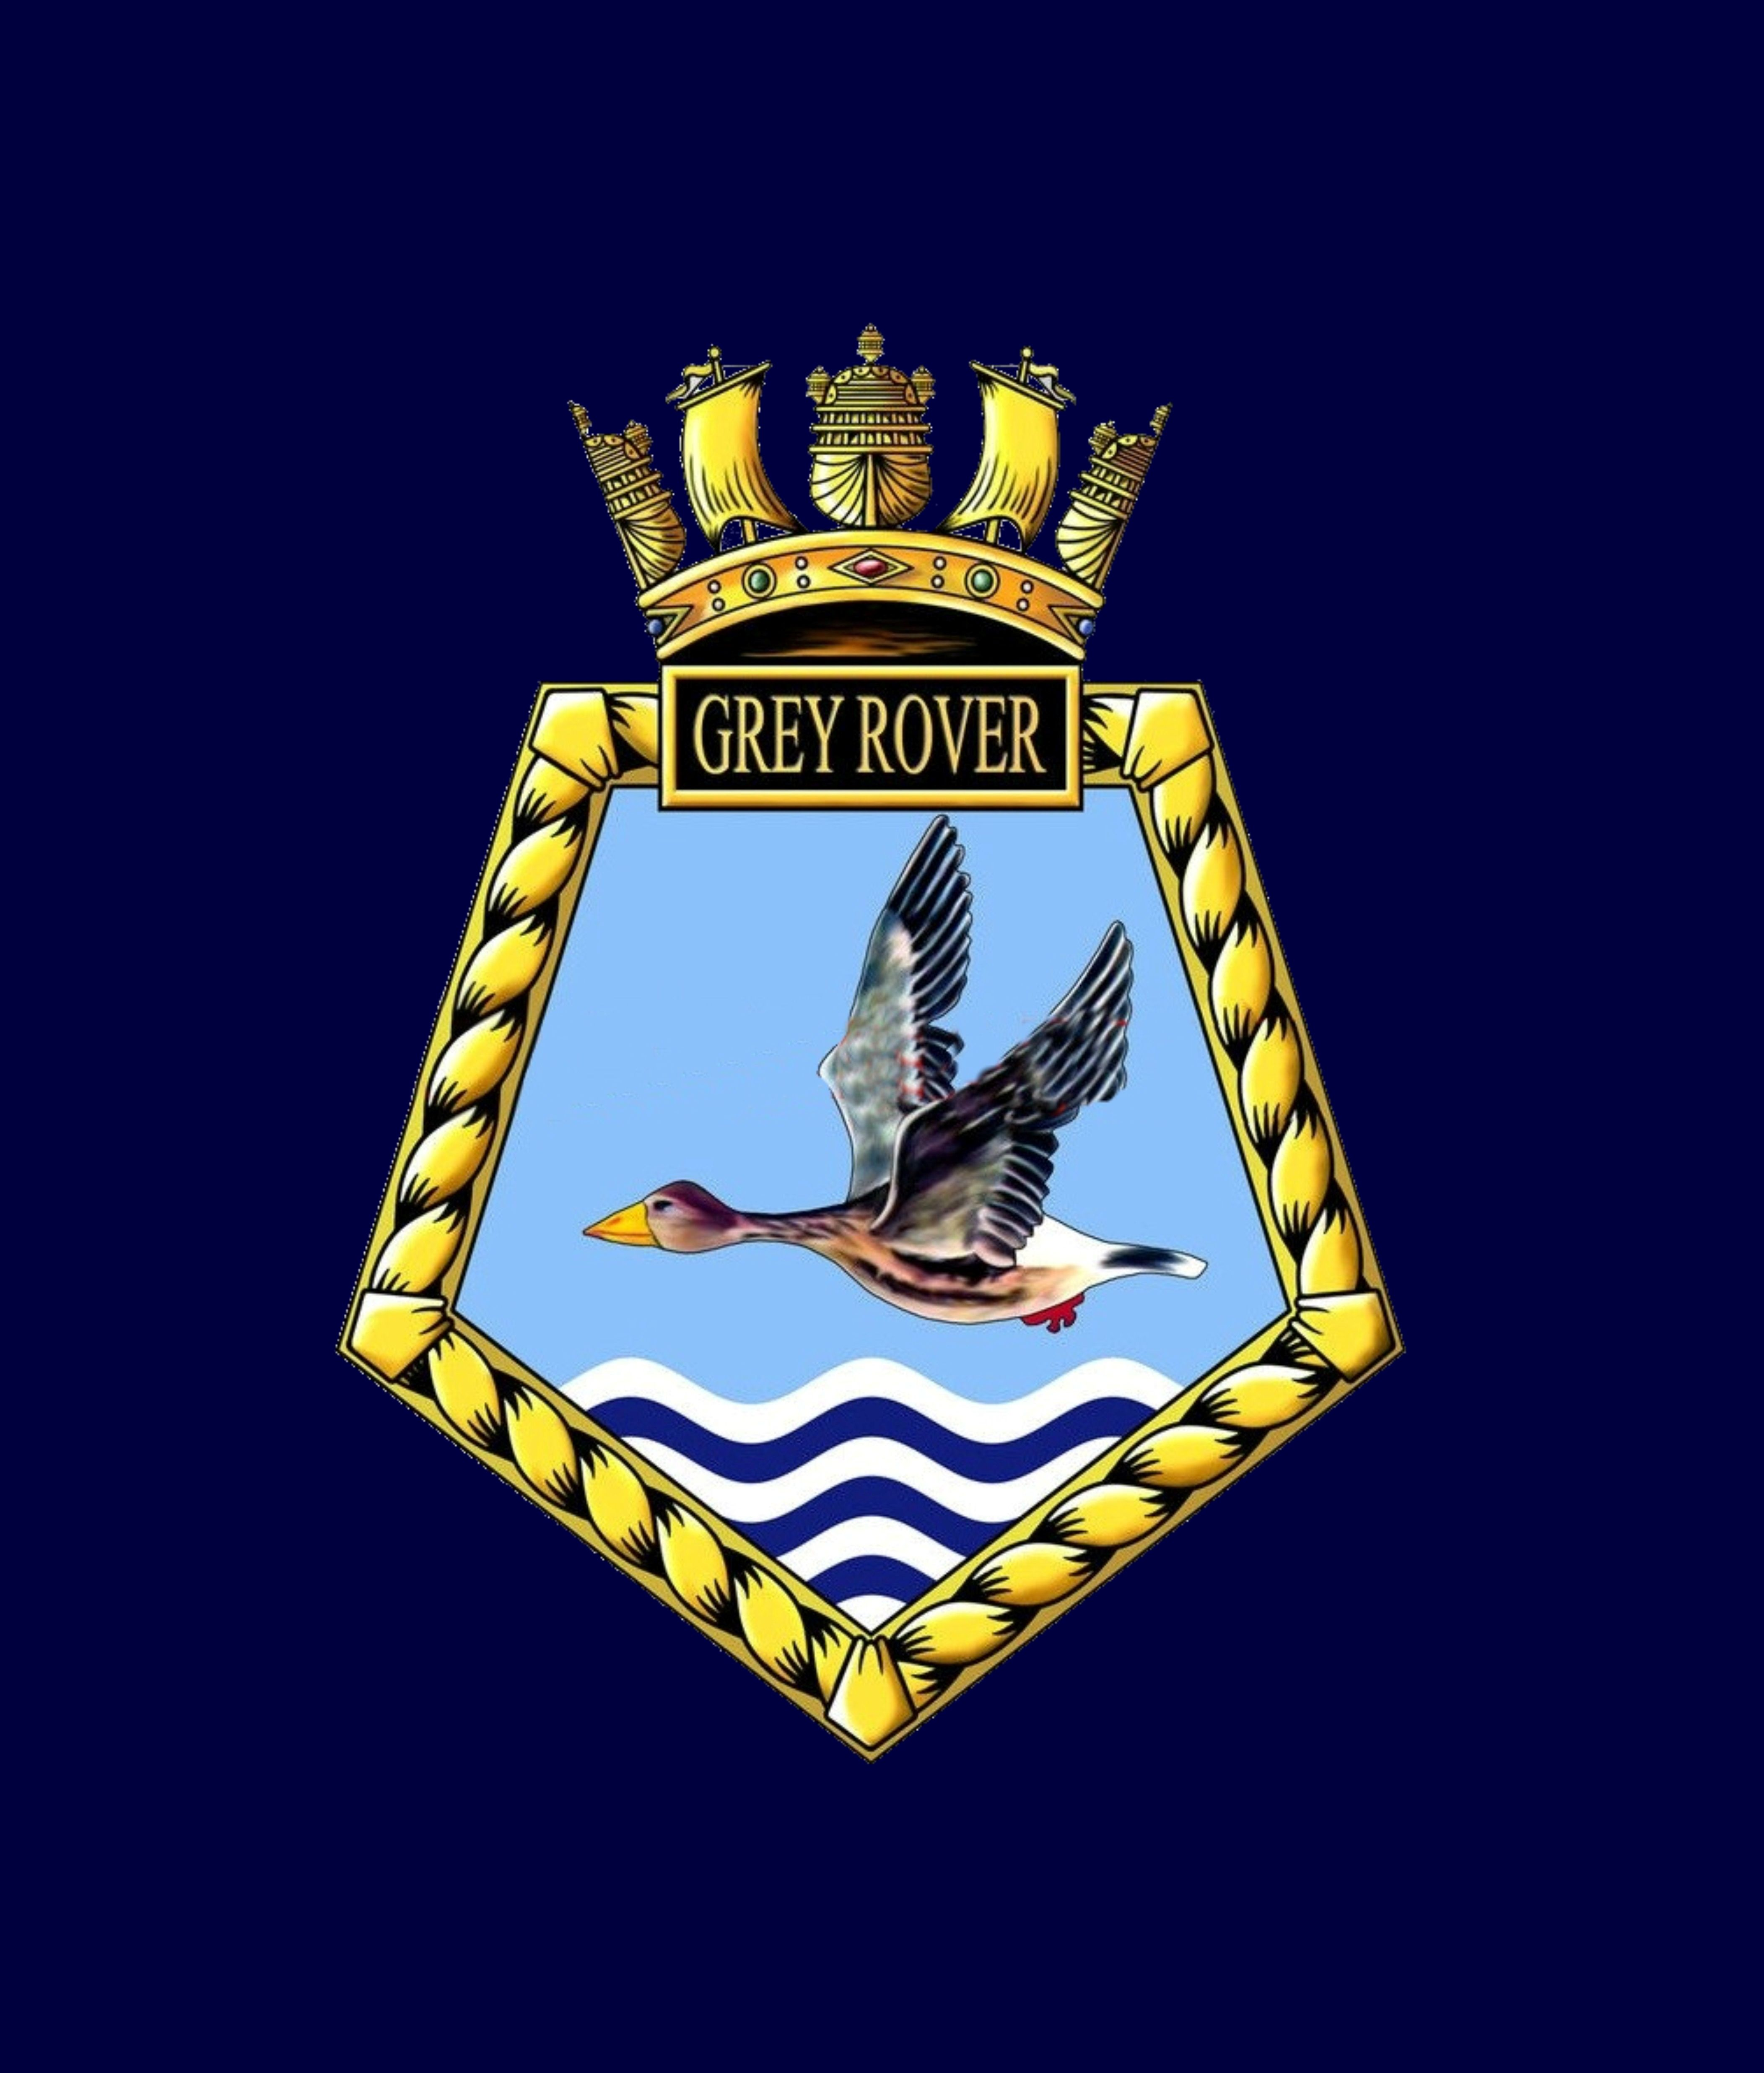 RFA Grey Rover Badge, Insignia, Veteran